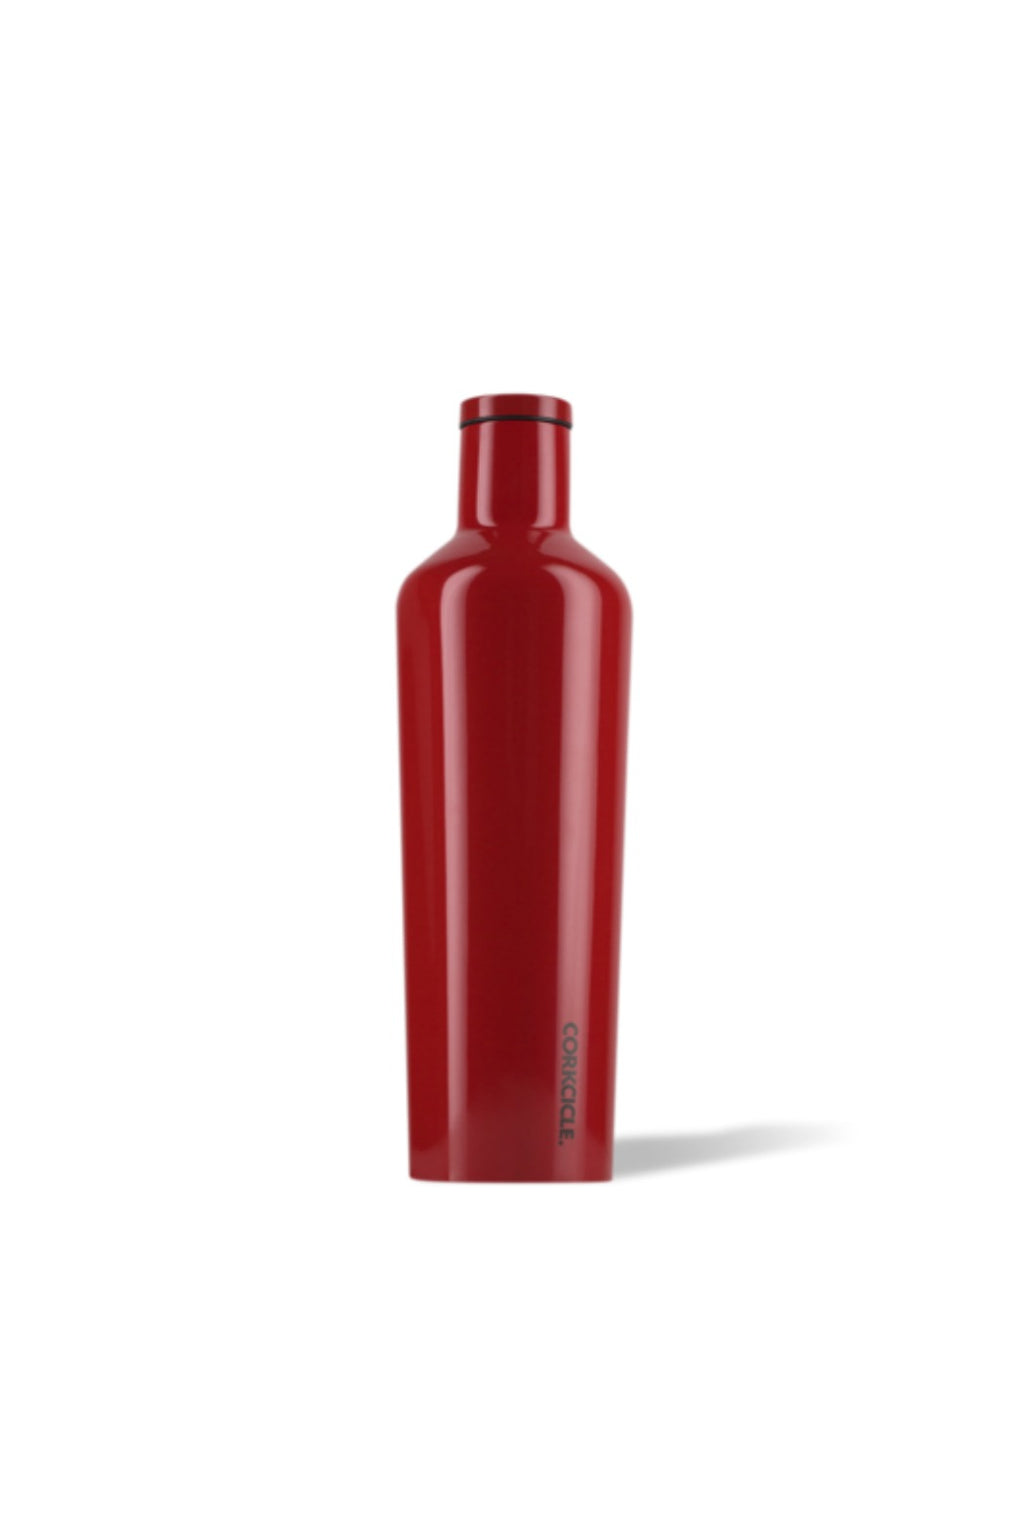 Corkcicle 25 oz. Dipped Canteen in Dipped Cherry